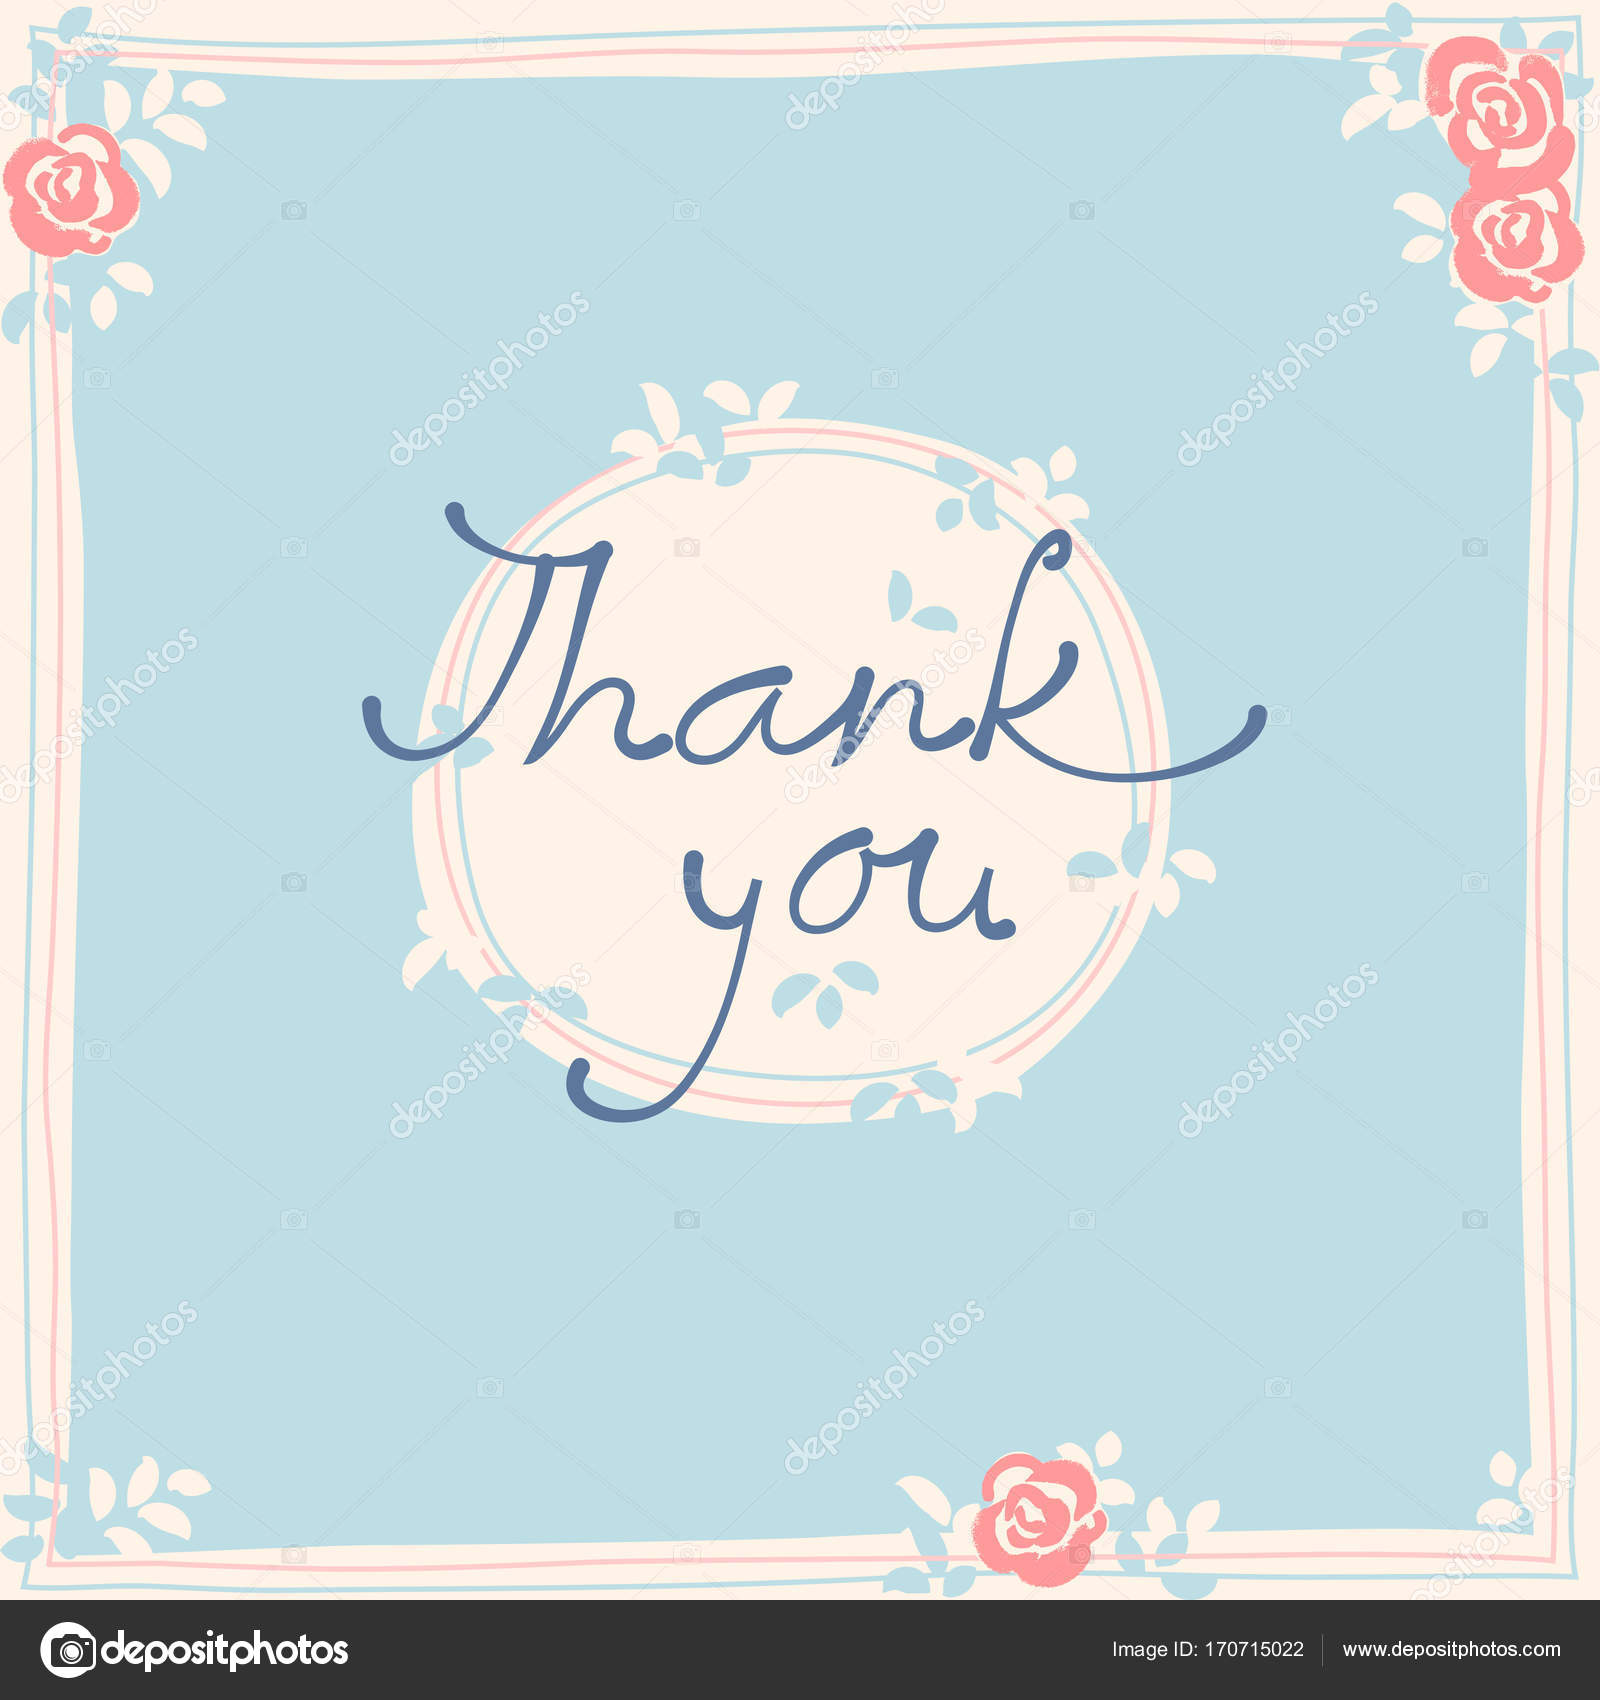 Thank you card design template simple greeting card elegant not thank you card design template simple greeting card elegant not stock vector kristyandbryce Gallery